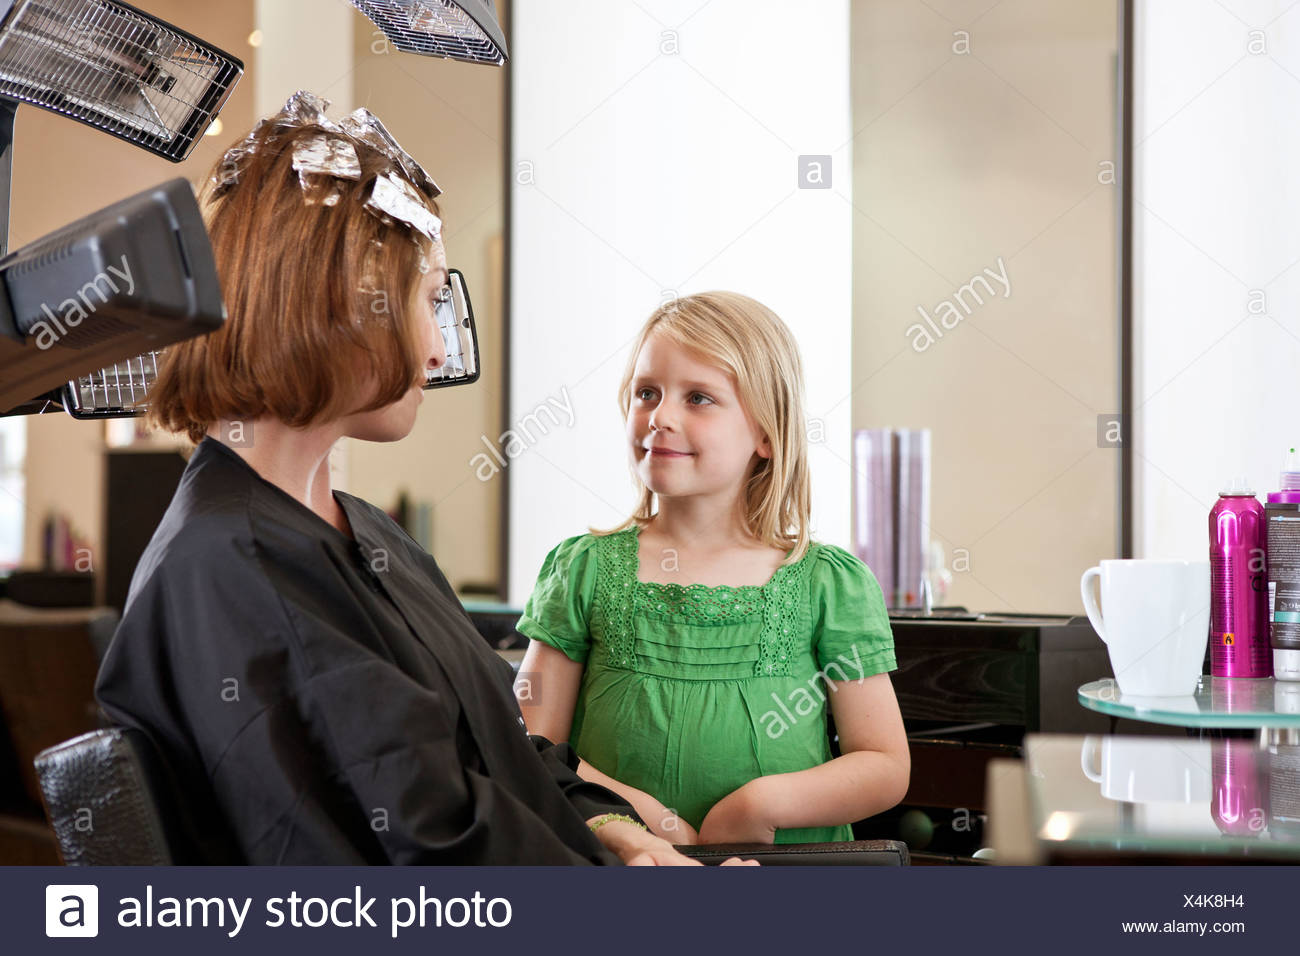 A young girl waiting in a hairdressing salon whilst her mother has her hair coloured - Stock Image